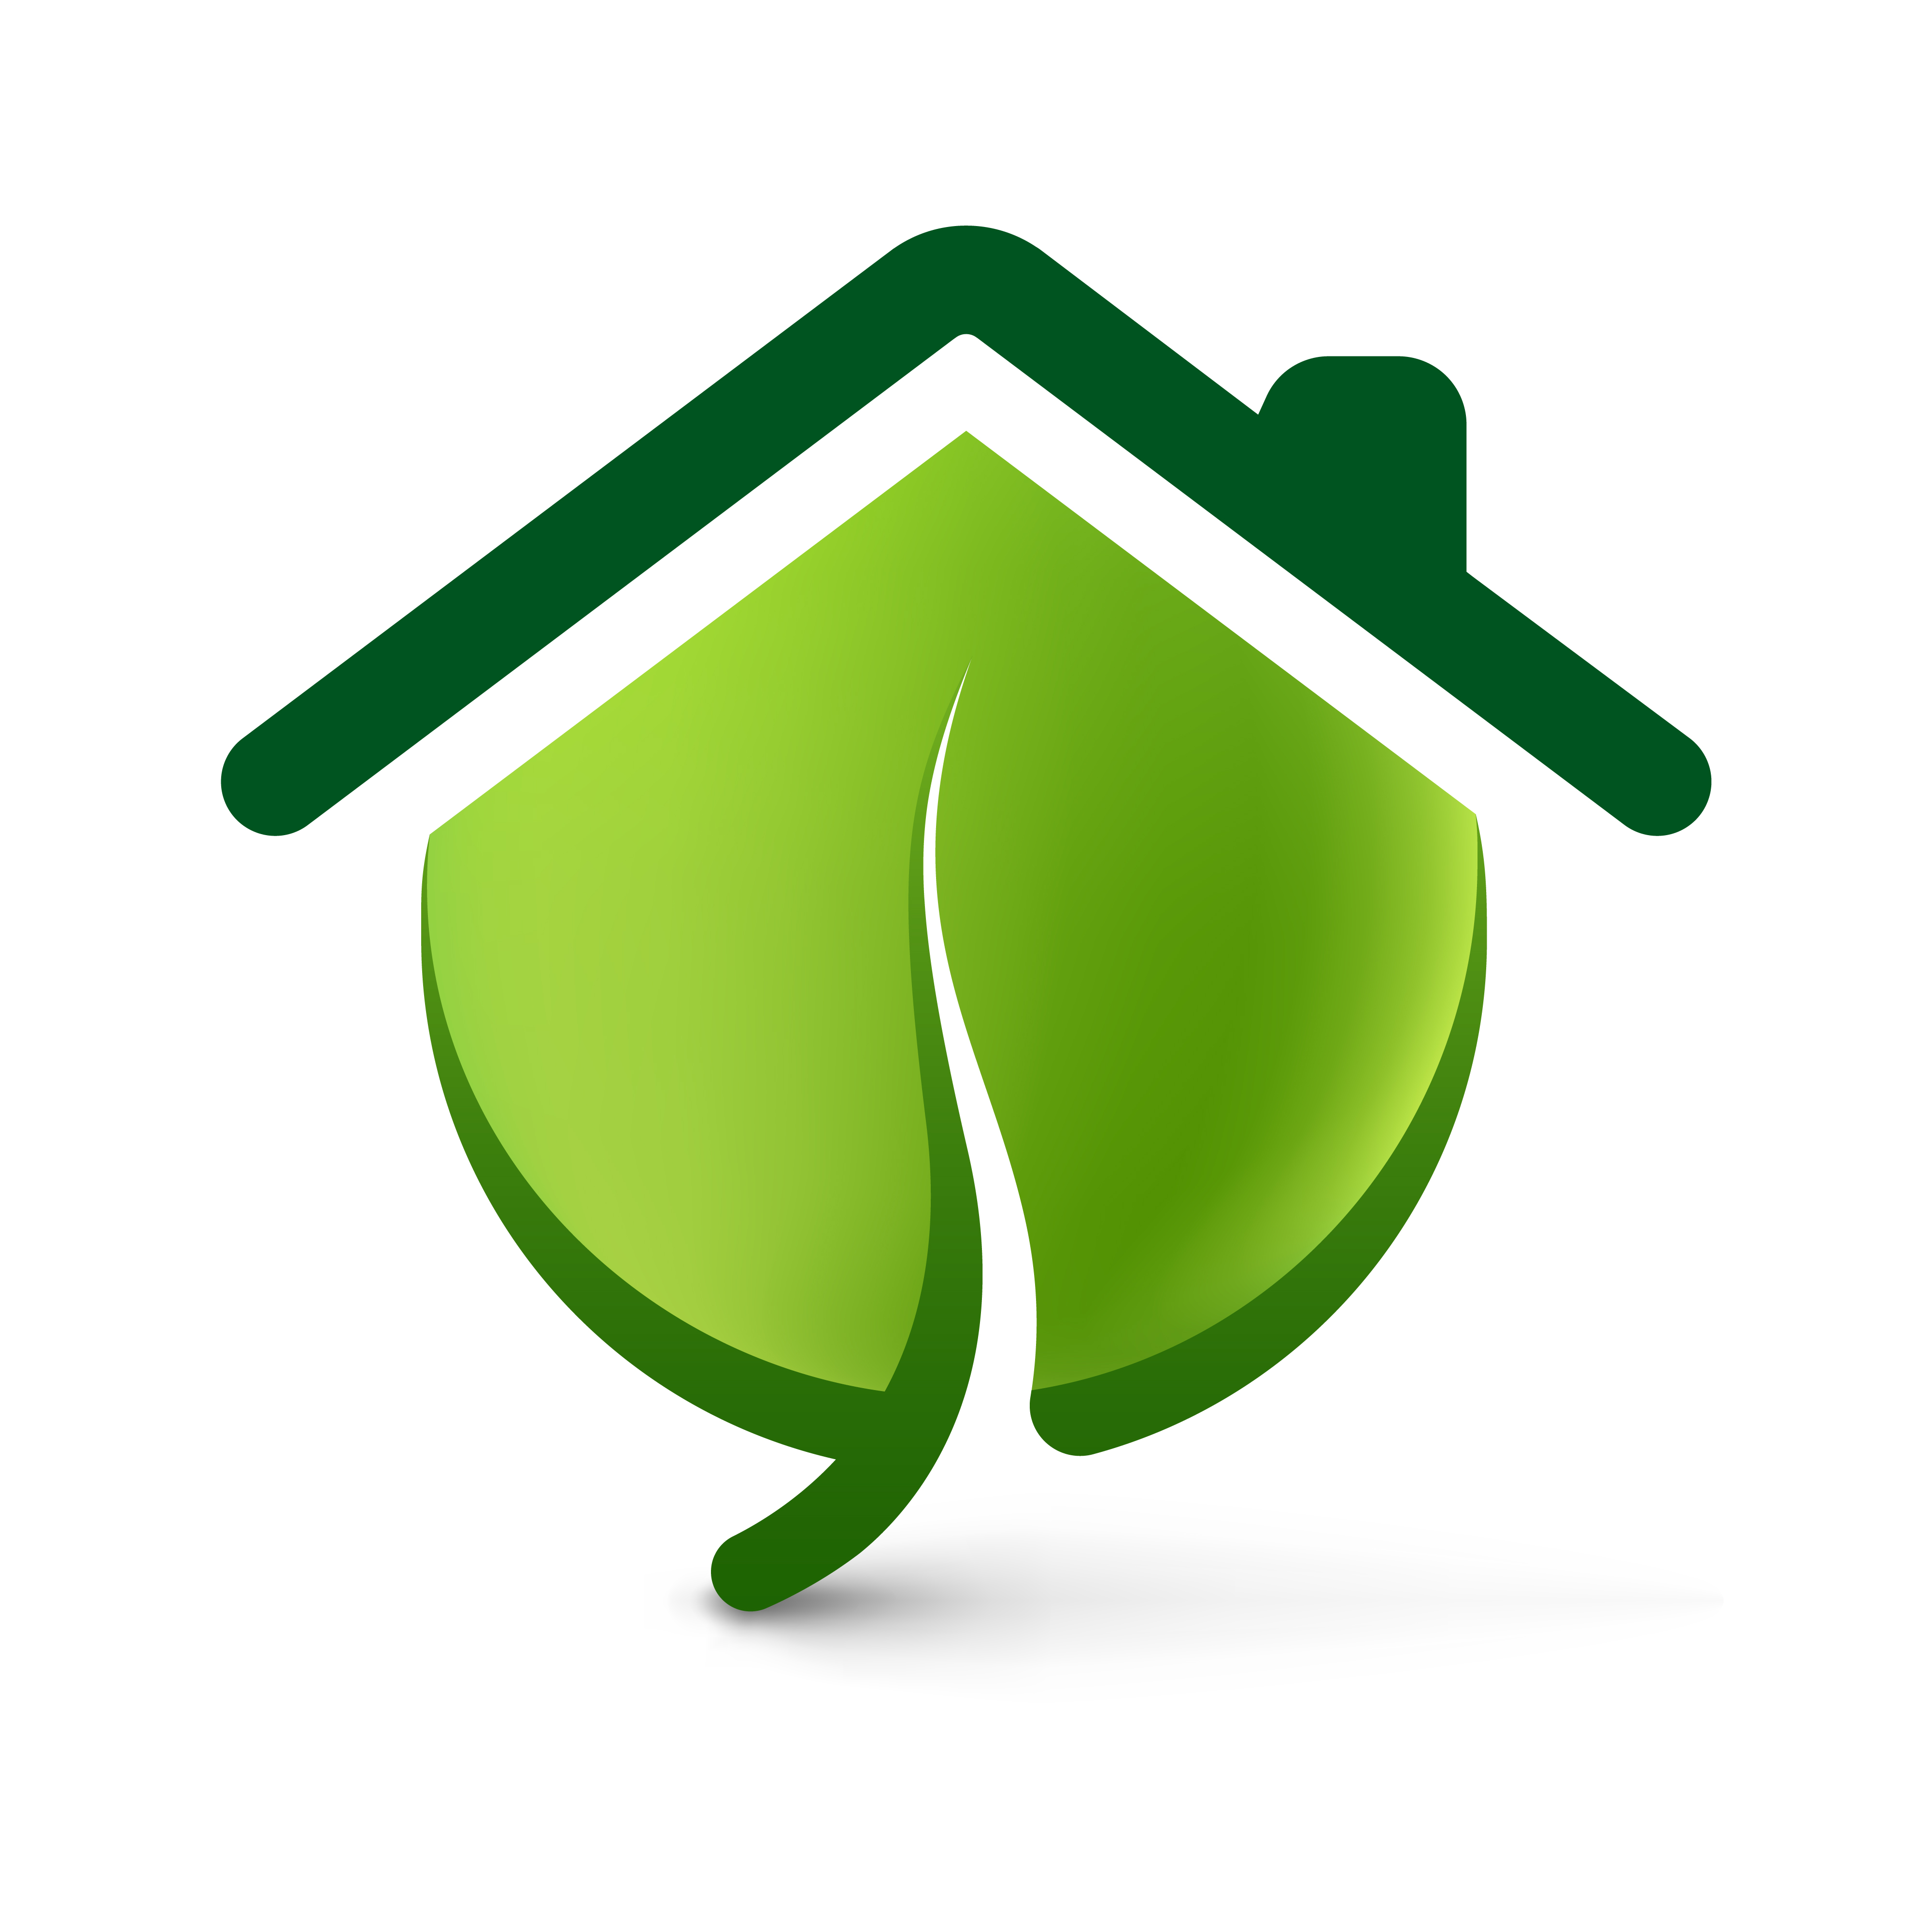 House to use for logo clipart clipart free stock House to use for logo clipart - ClipartFest clipart free stock